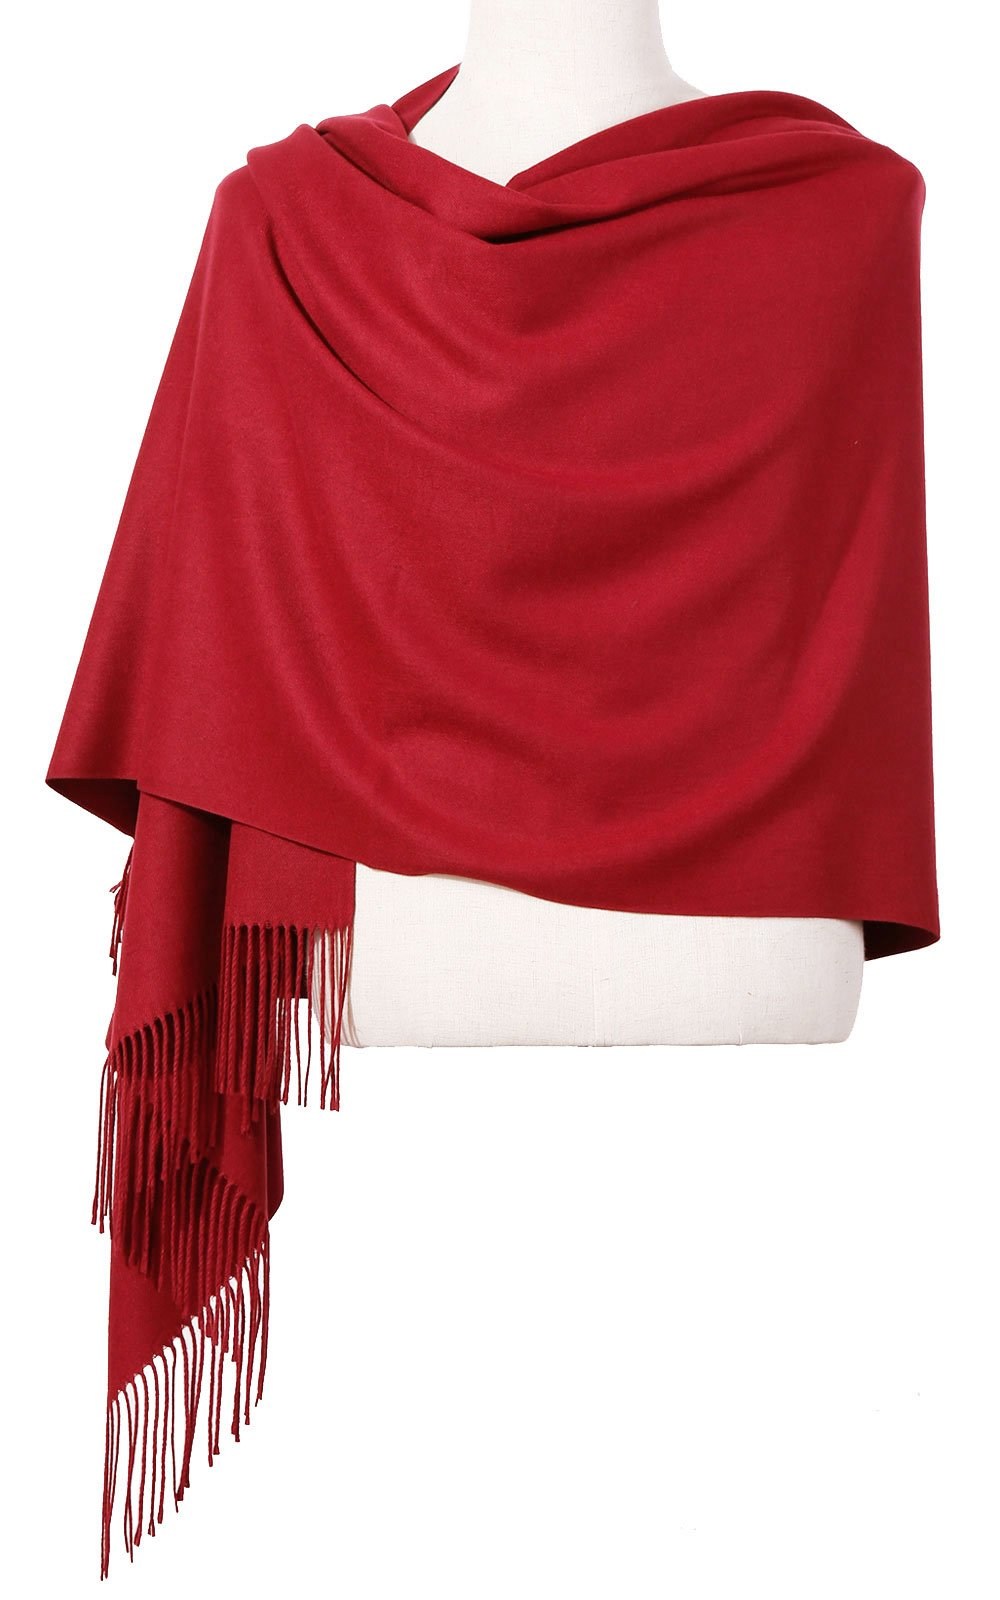 Womens Pashmina Shawl Wrap Scarf - Ohayomi Solid Color Cashmere Stole Extra Large 78''x28'' (wine red)